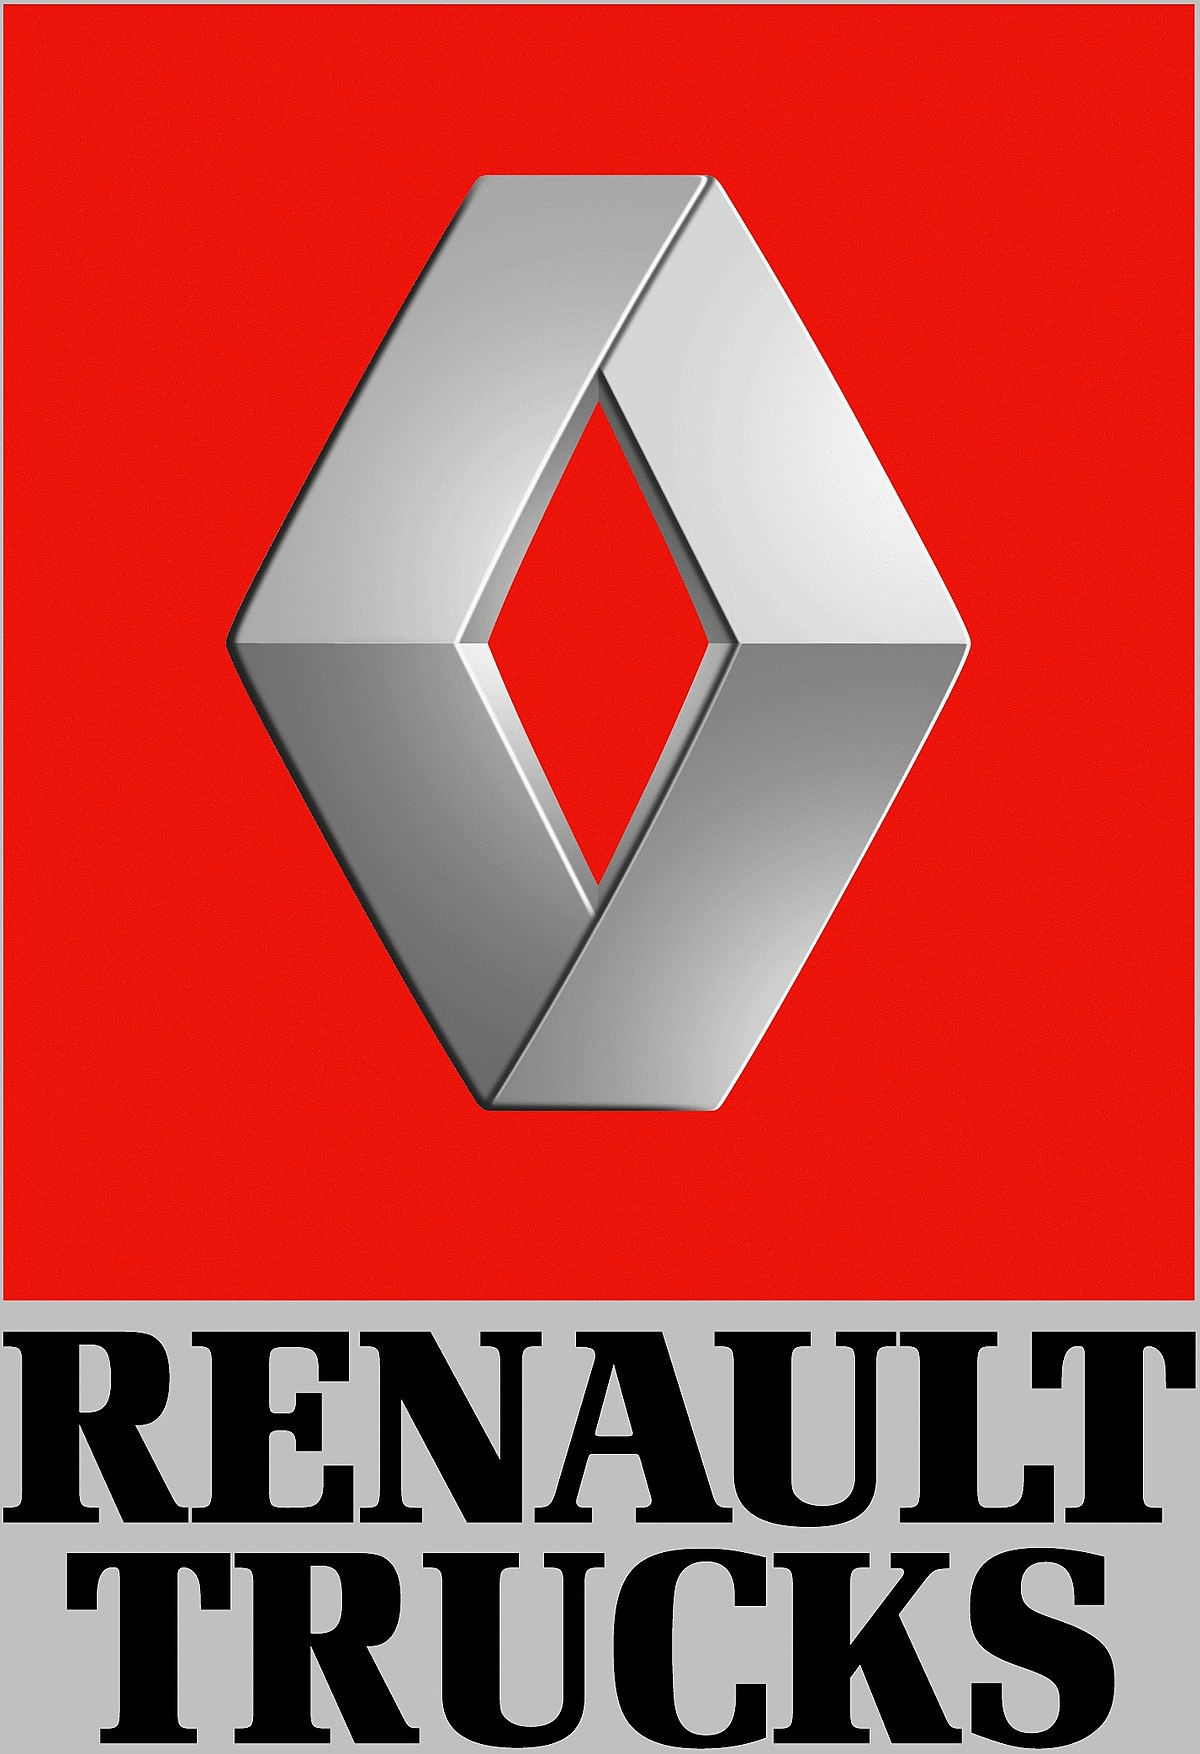 renault trucks wikipedia. Black Bedroom Furniture Sets. Home Design Ideas